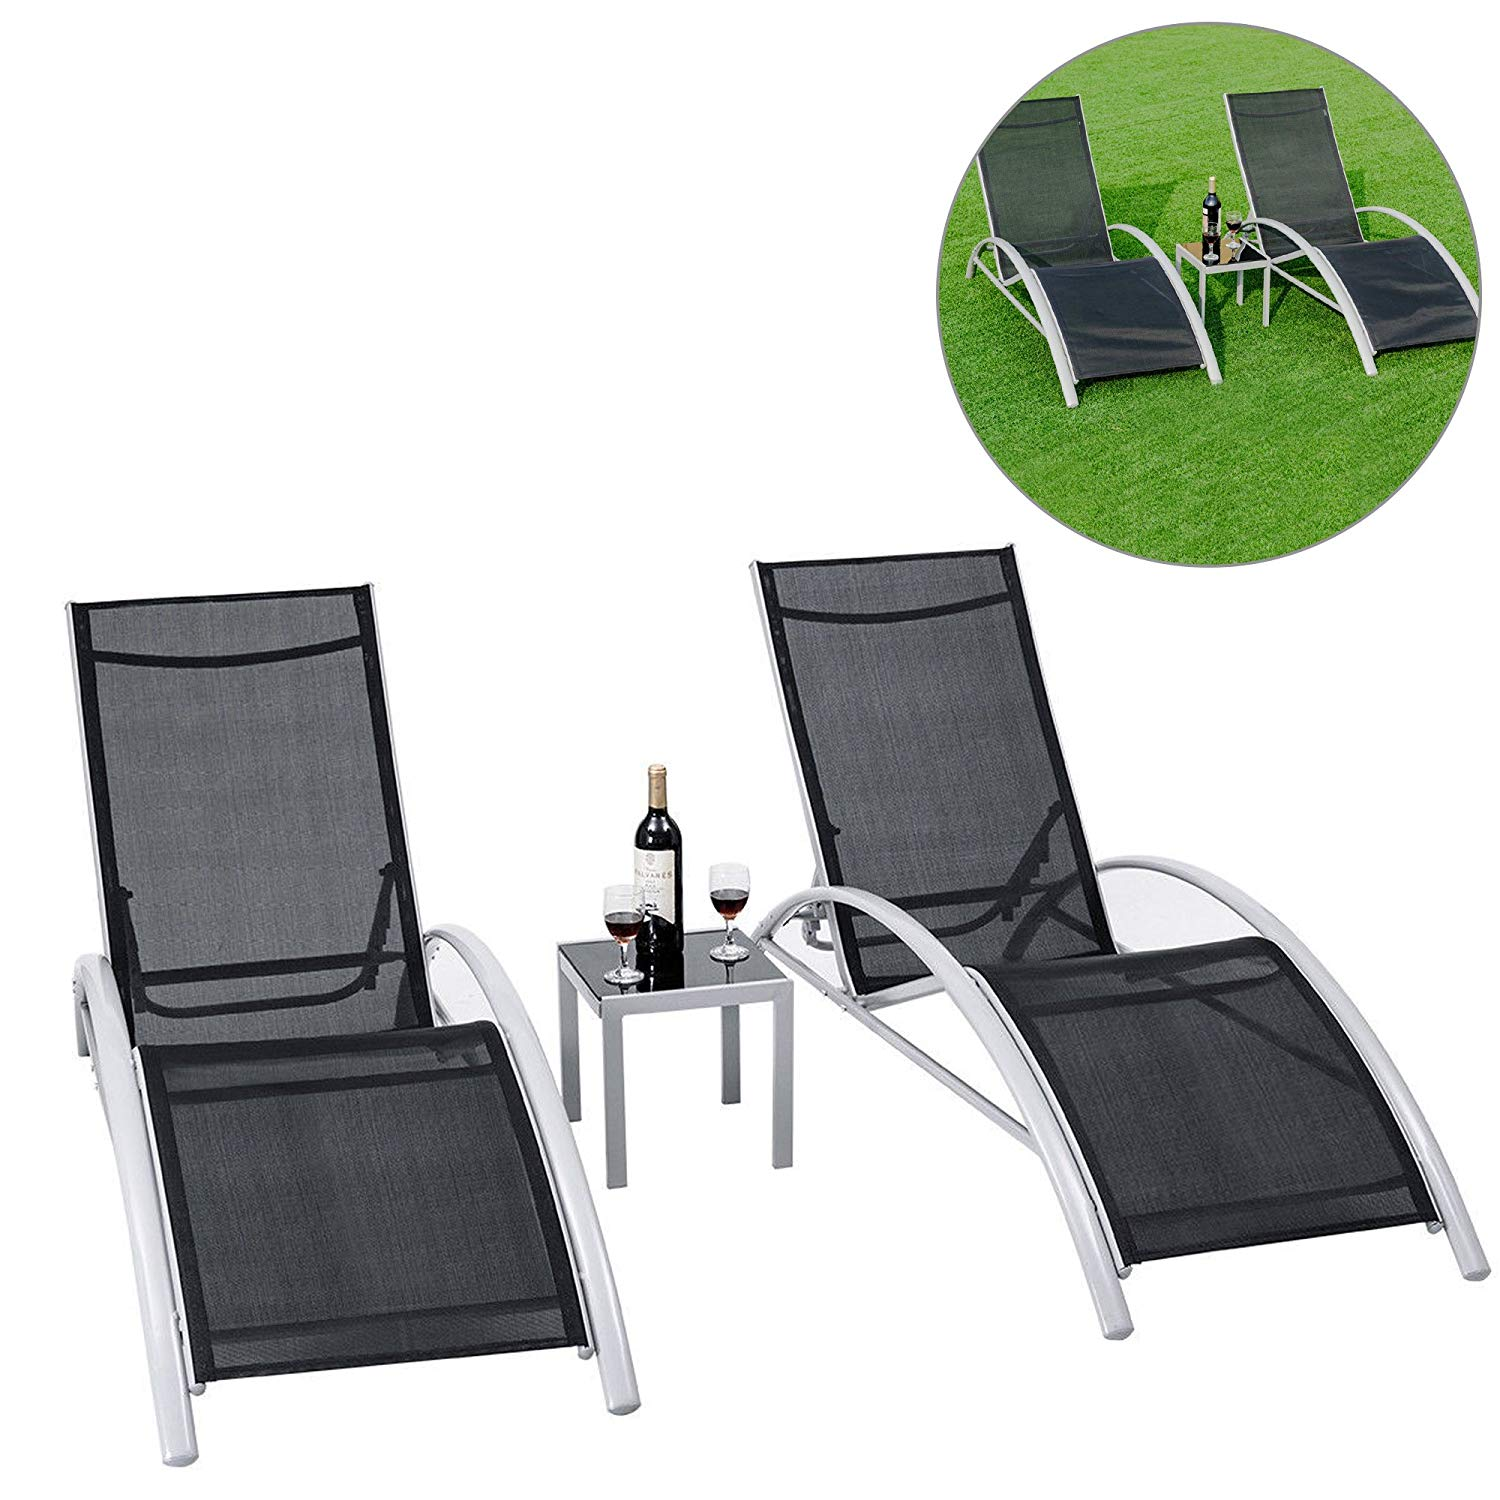 Pleasing Cheap Lowes Lounge Chairs Find Lowes Lounge Chairs Deals On Short Links Chair Design For Home Short Linksinfo